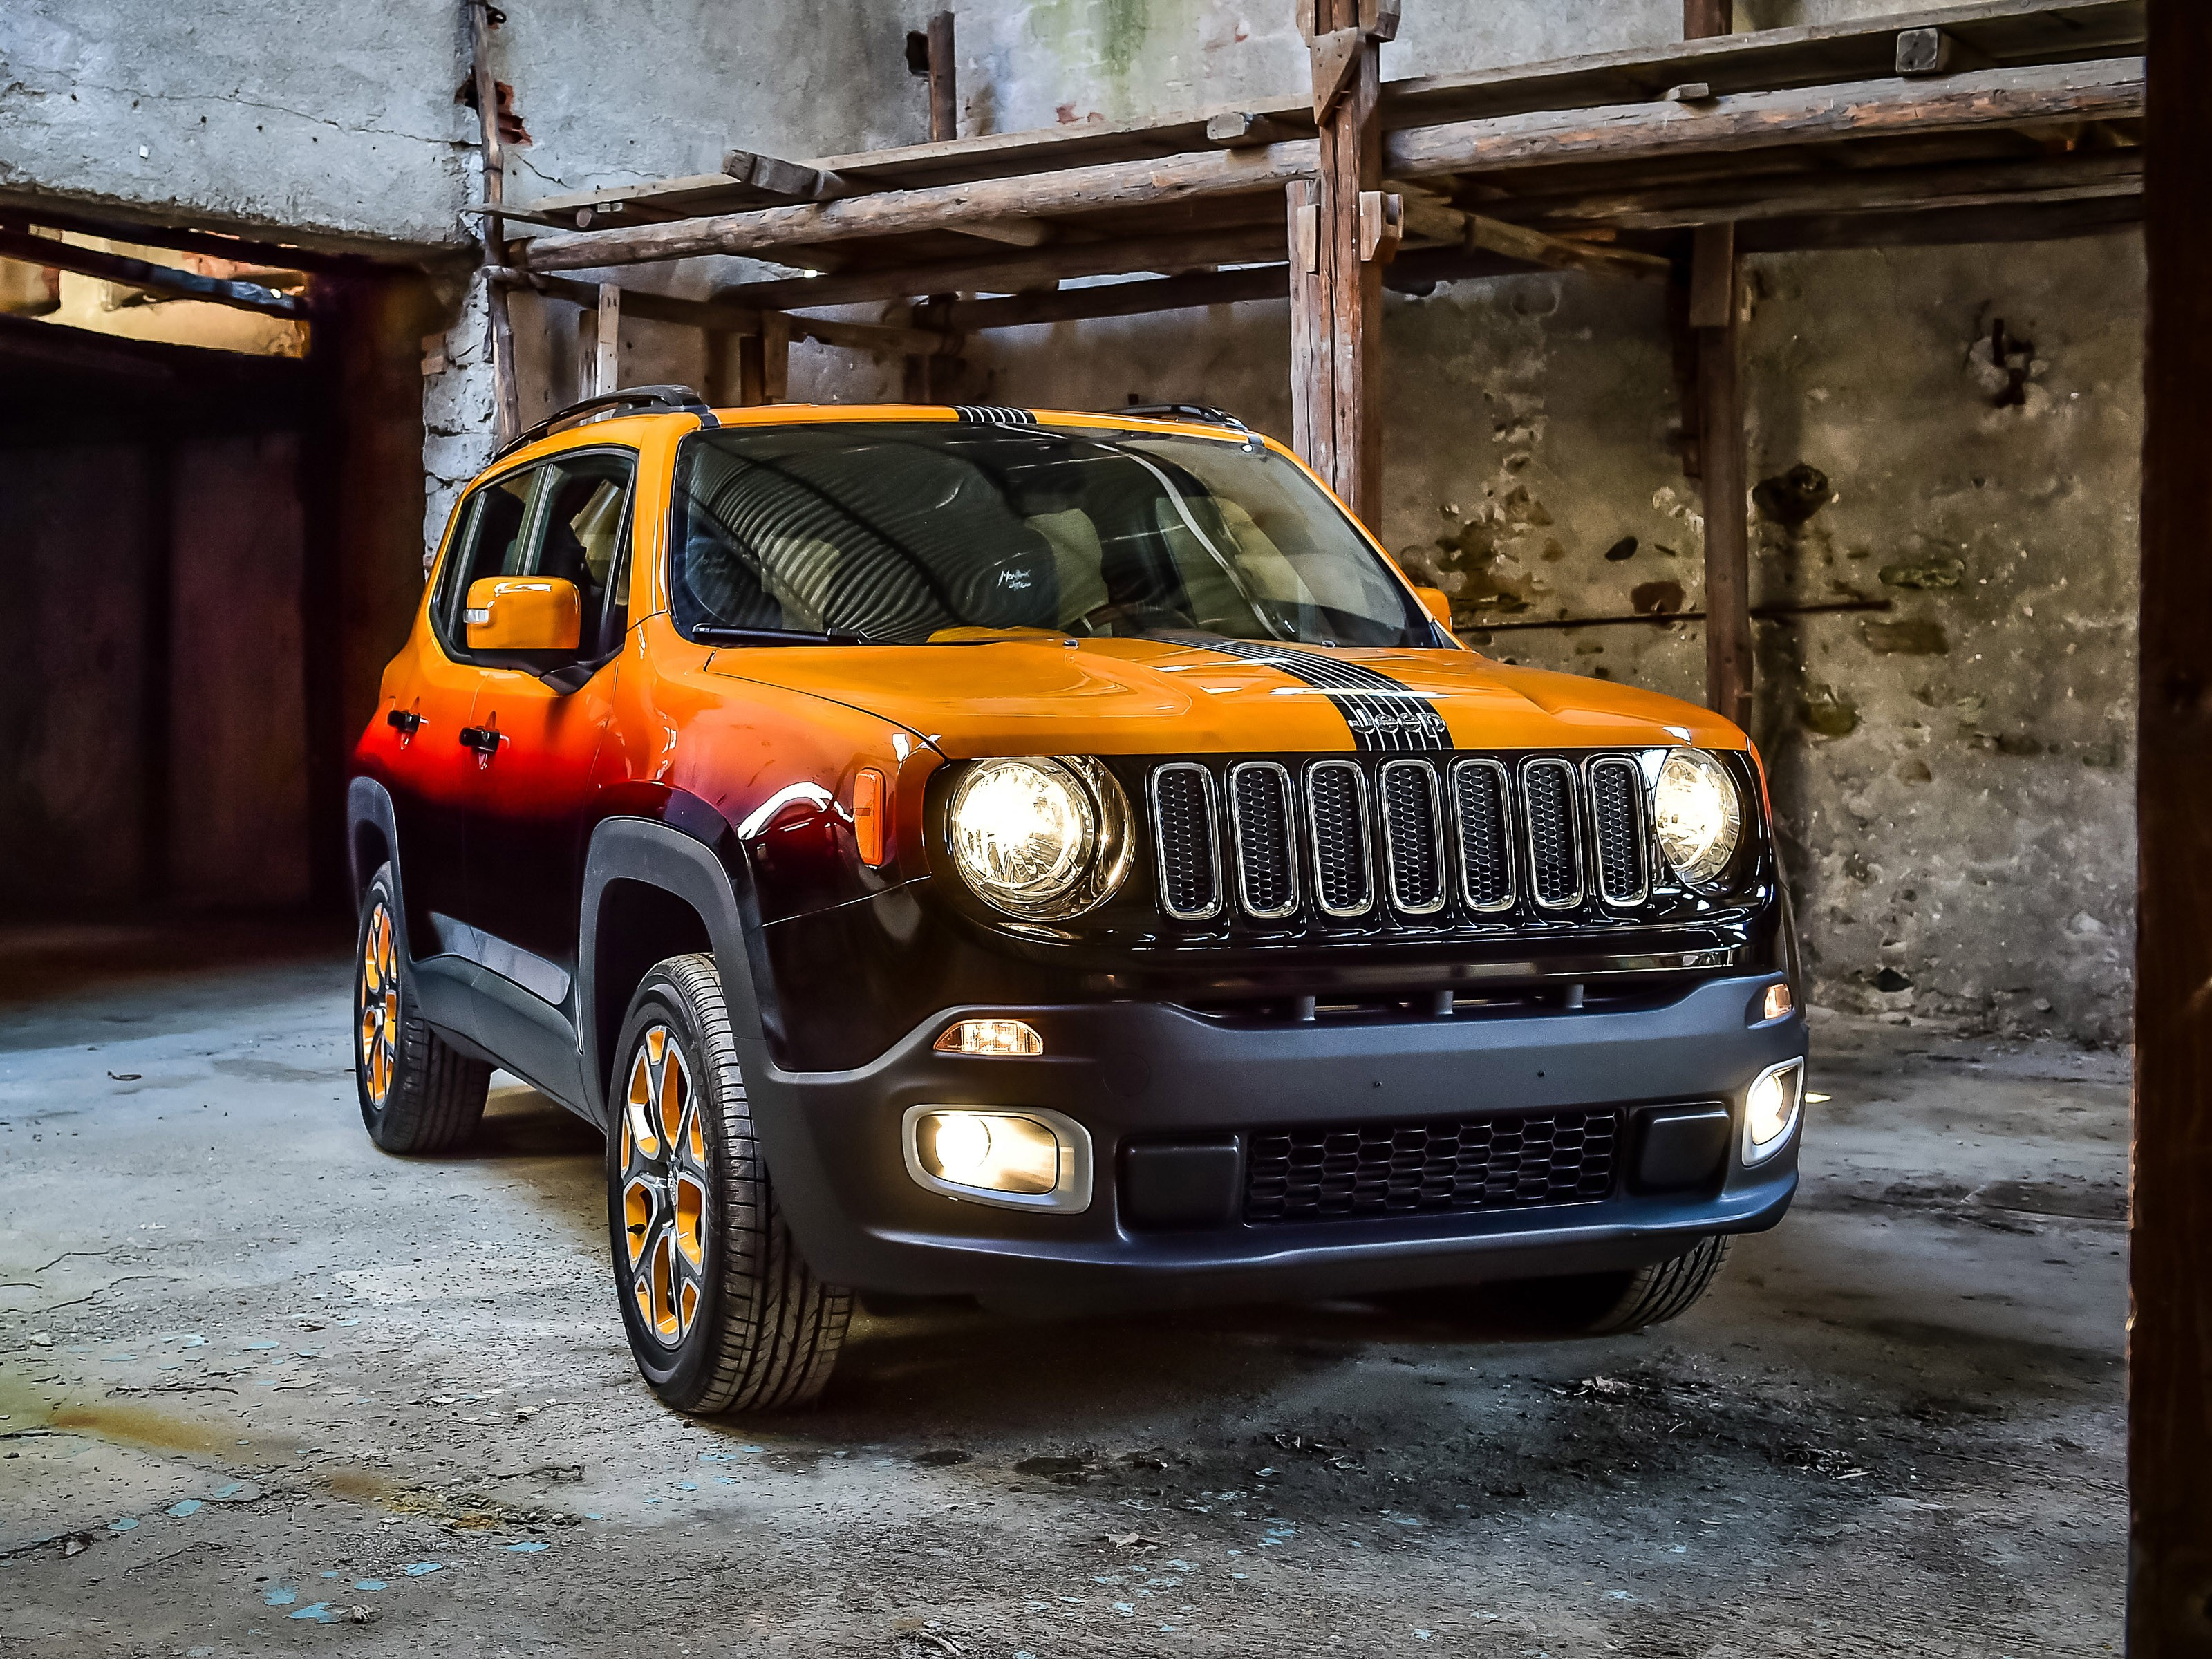 2015 Jeep Renegade Montreux Jazz Festival Showcar by Garage Italia Customs